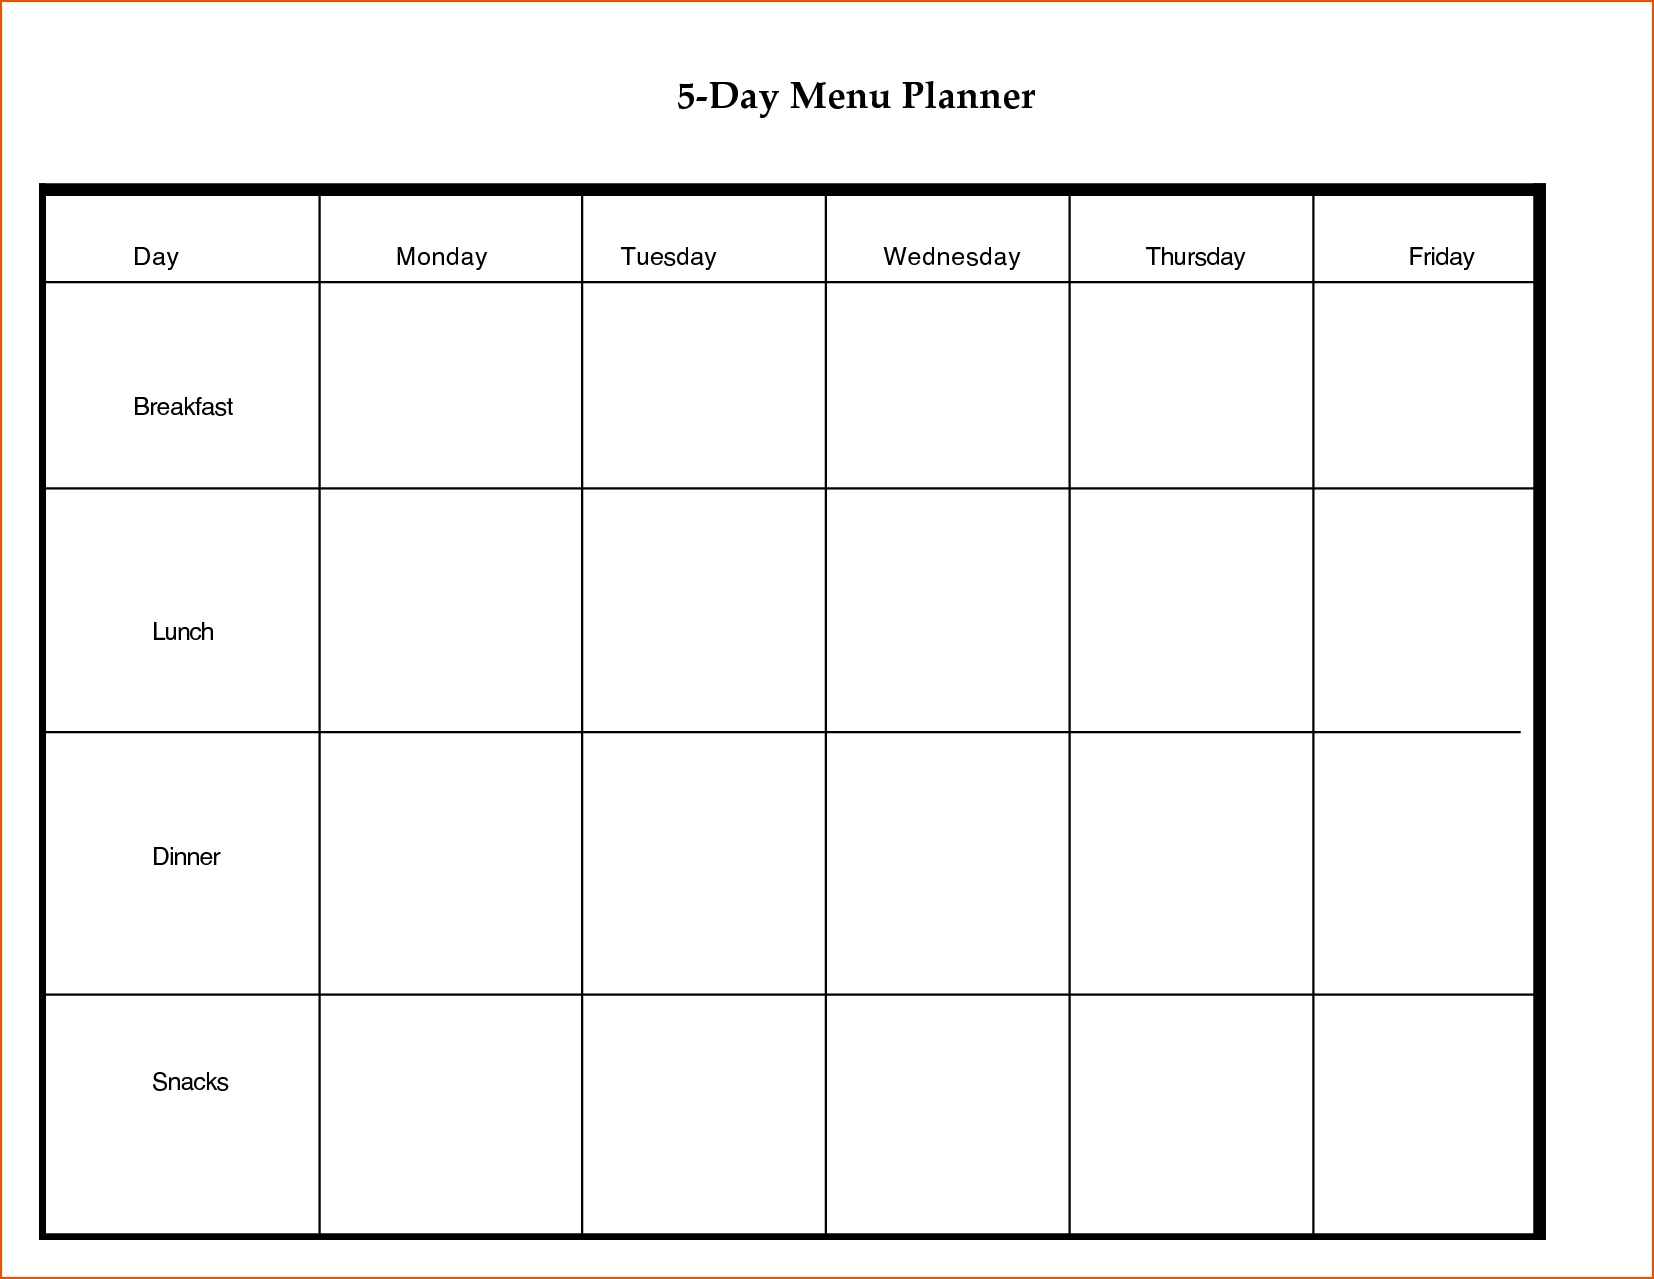 Day Schedule Template Trip Planner Timetable Hourly Weekly | Smorad for Blank 5 Day School Timetable